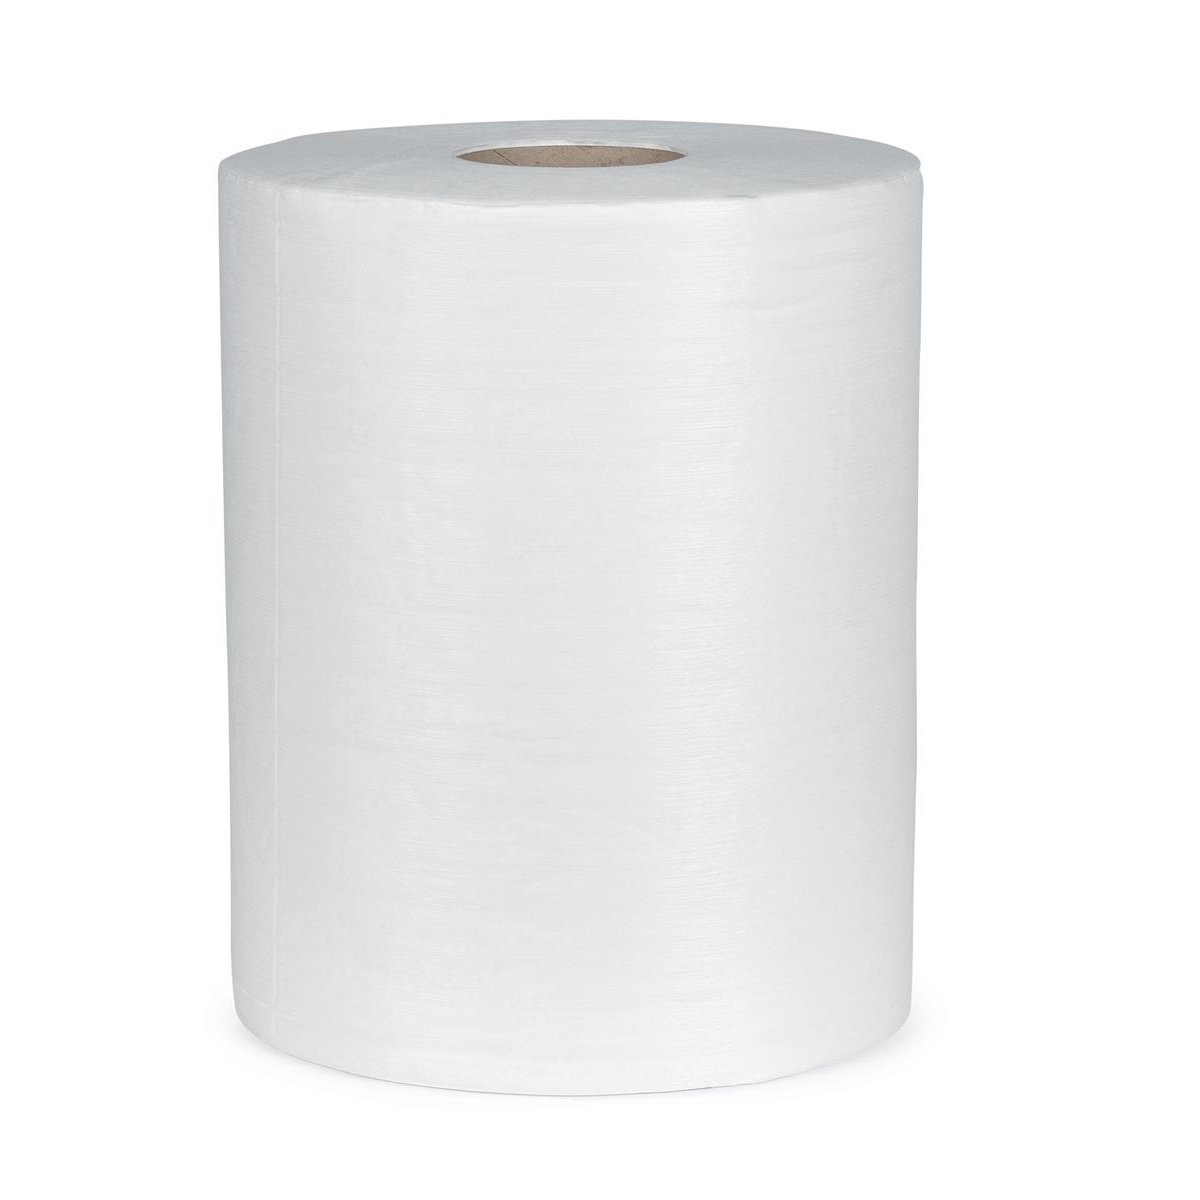 5 Star Facilities Cloths Low Lint Roll Multipurpose Solvent-resistant 30x36cm White [Roll 400]